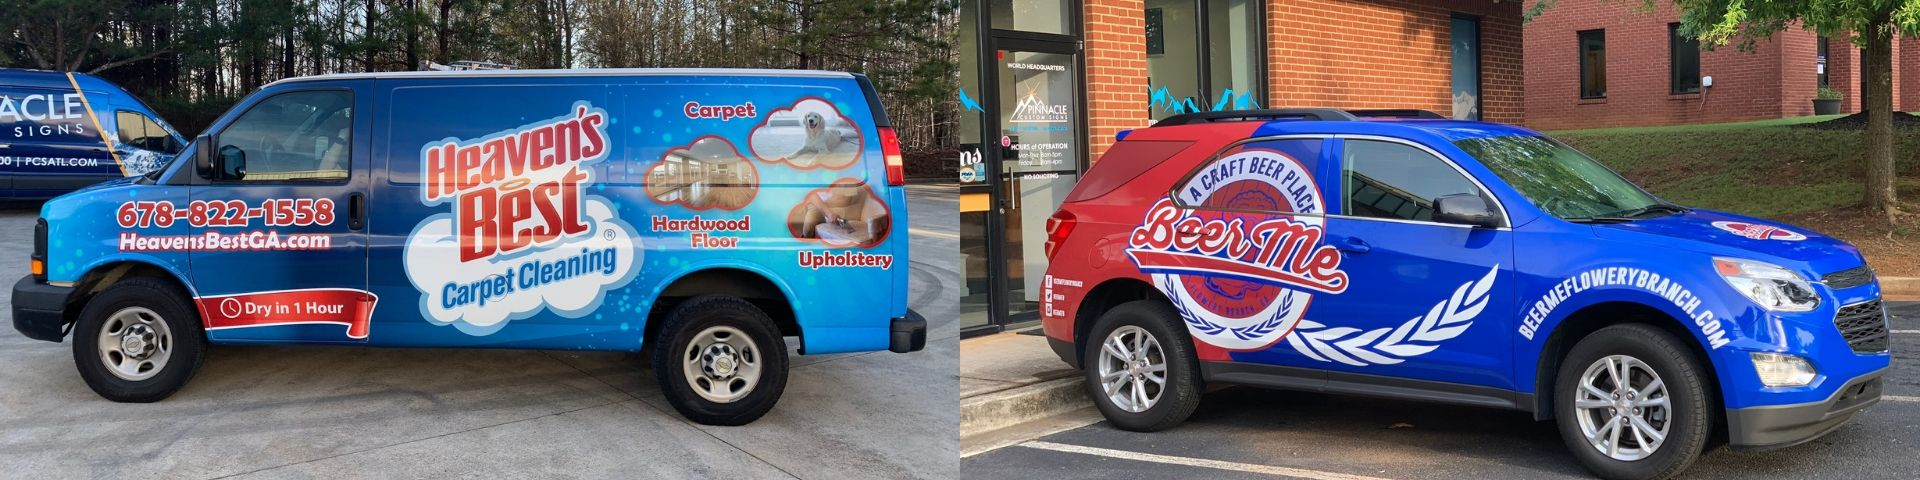 We provide custom car wraps for any vehicle